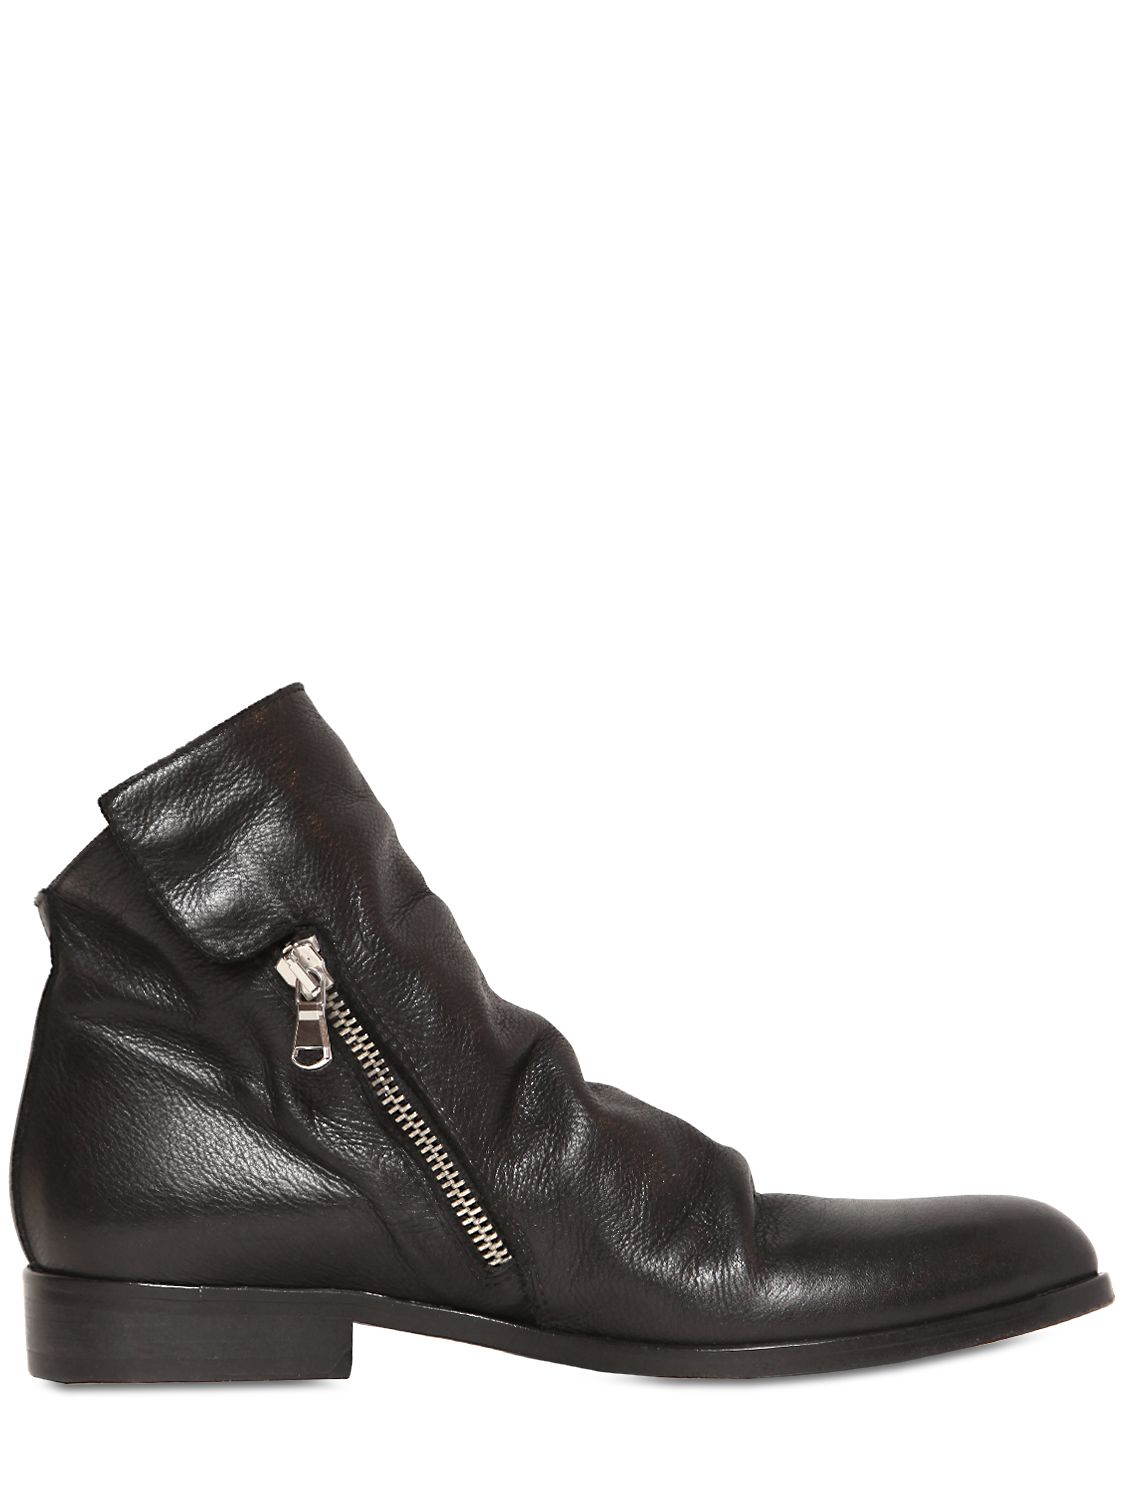 Strategia 20mm Zipped Tumbled Calf Ankle Boots in Black